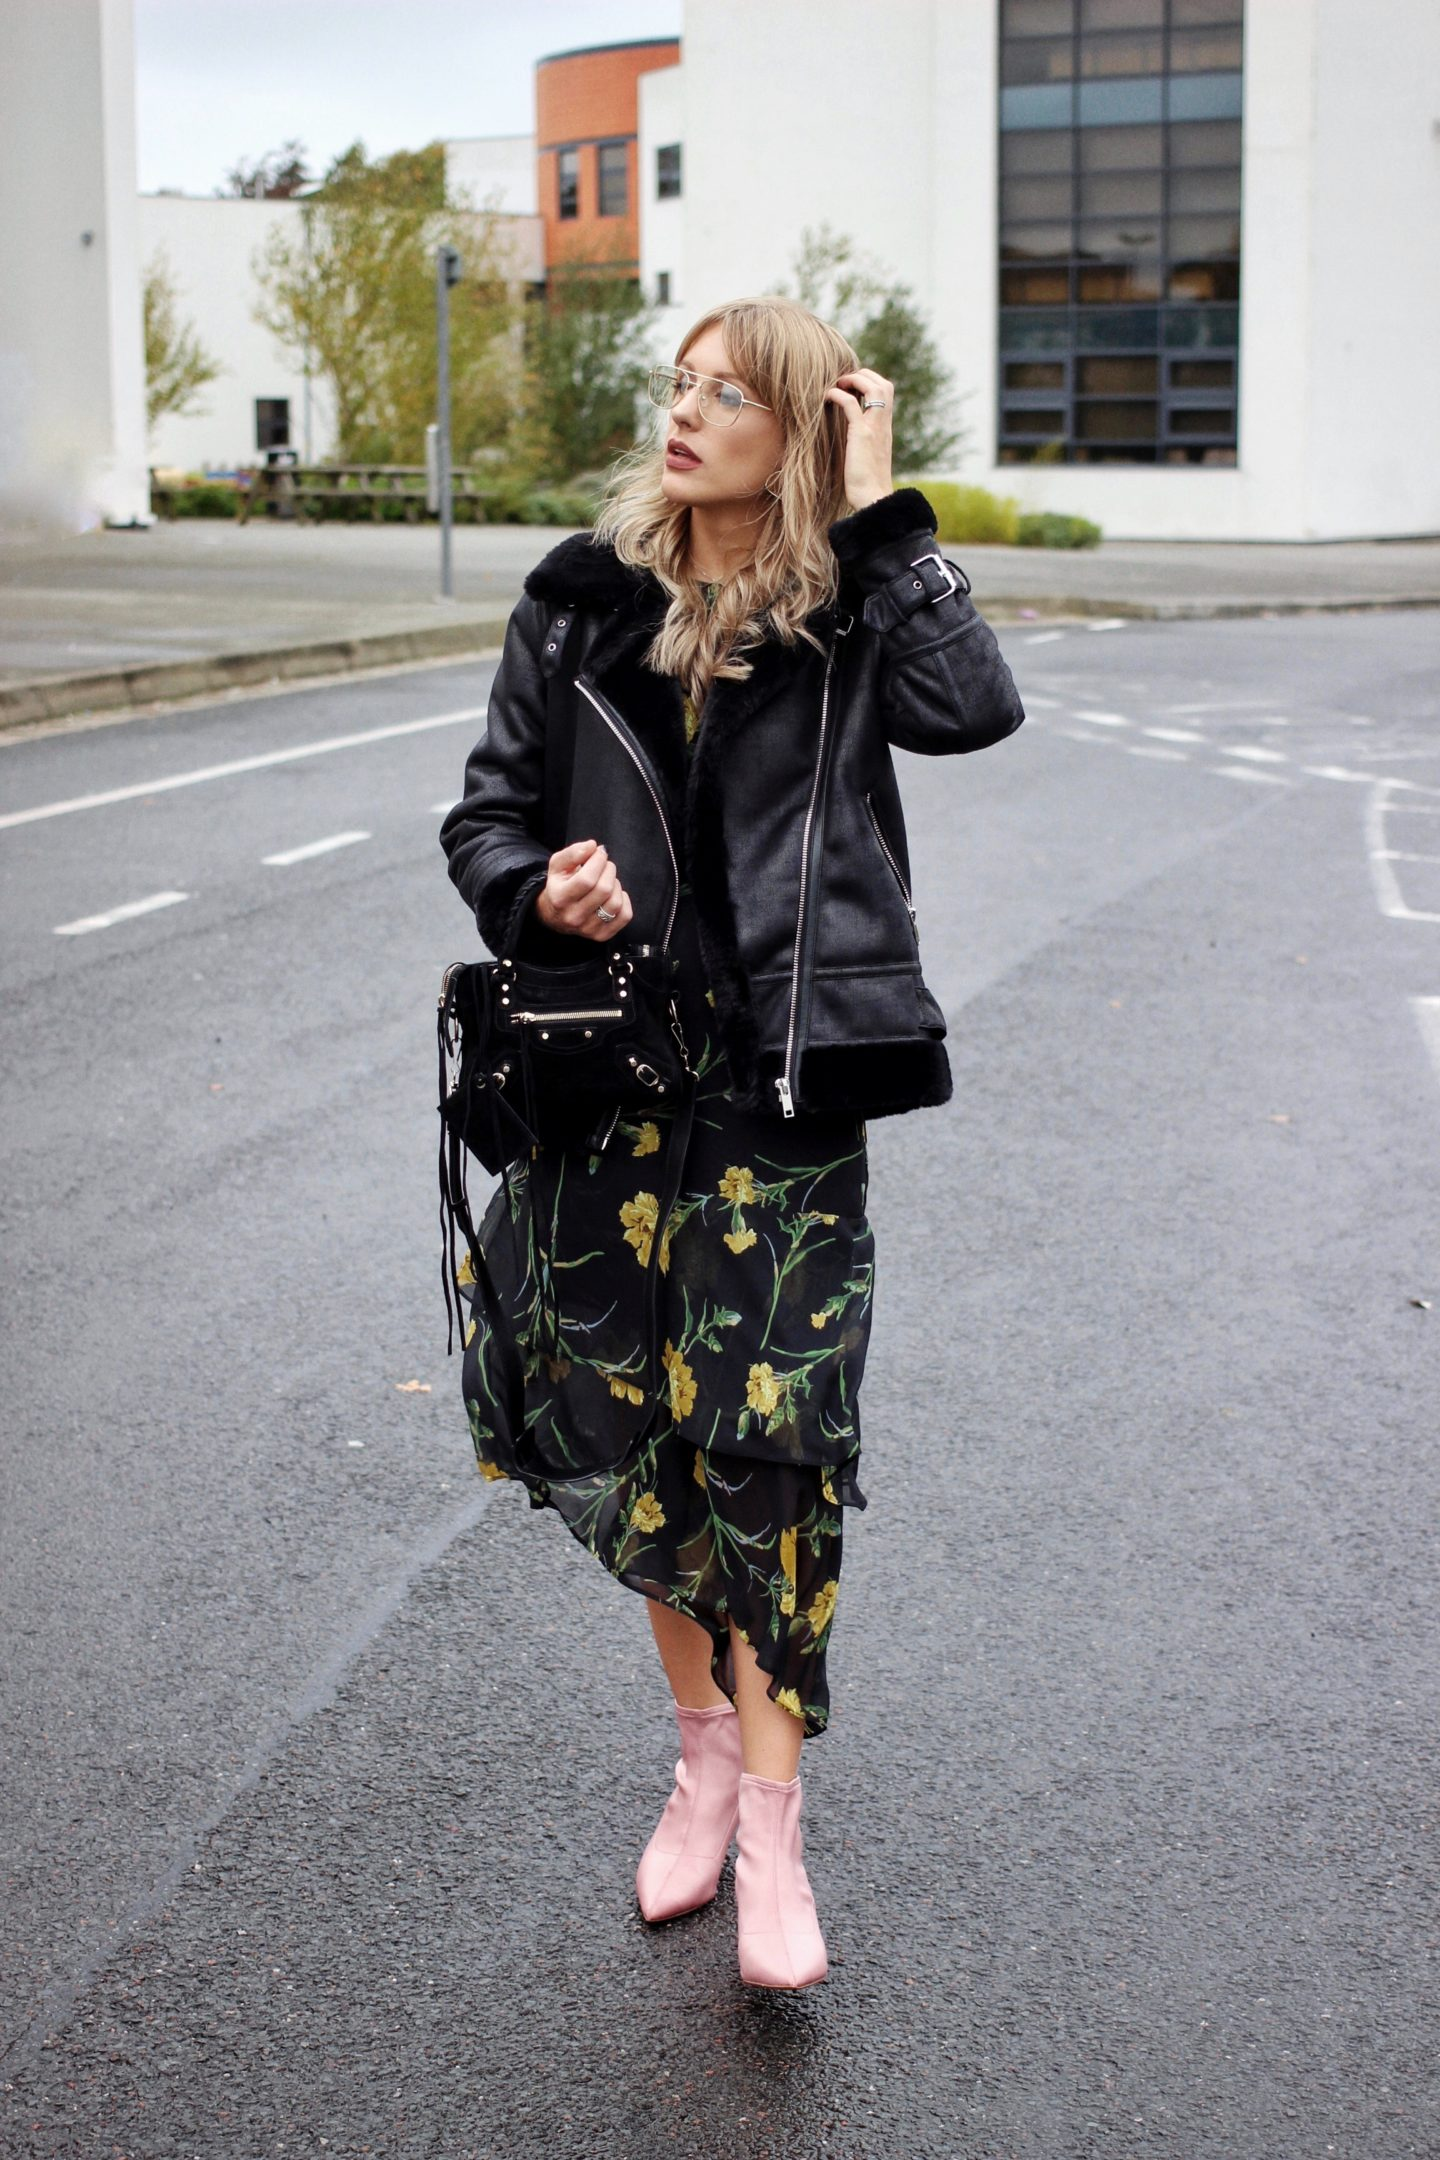 Warehouse floral dress and shearling jacket on Charlotte Buttrick Style Blogger